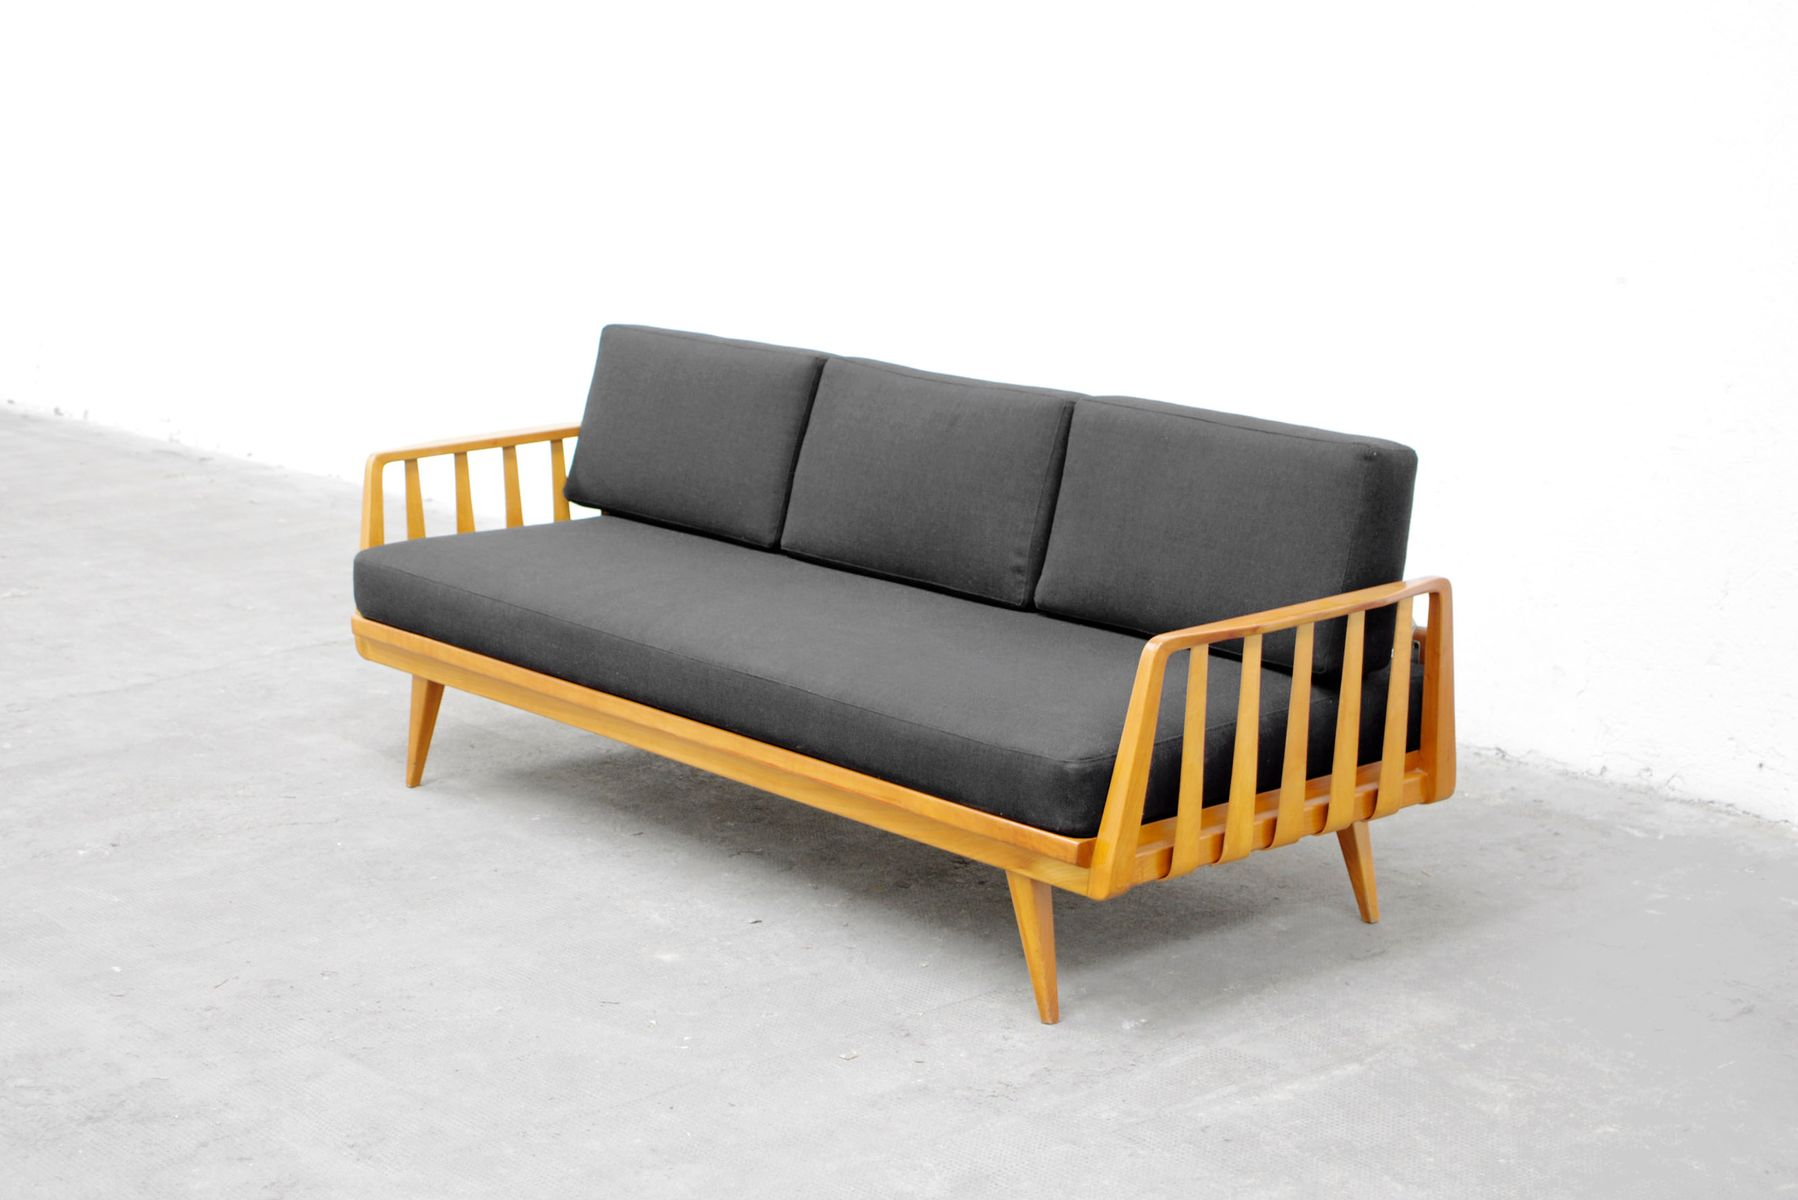 sofa daybed by walter knoll for knoll antimott 1950 for sale at pamono. Black Bedroom Furniture Sets. Home Design Ideas